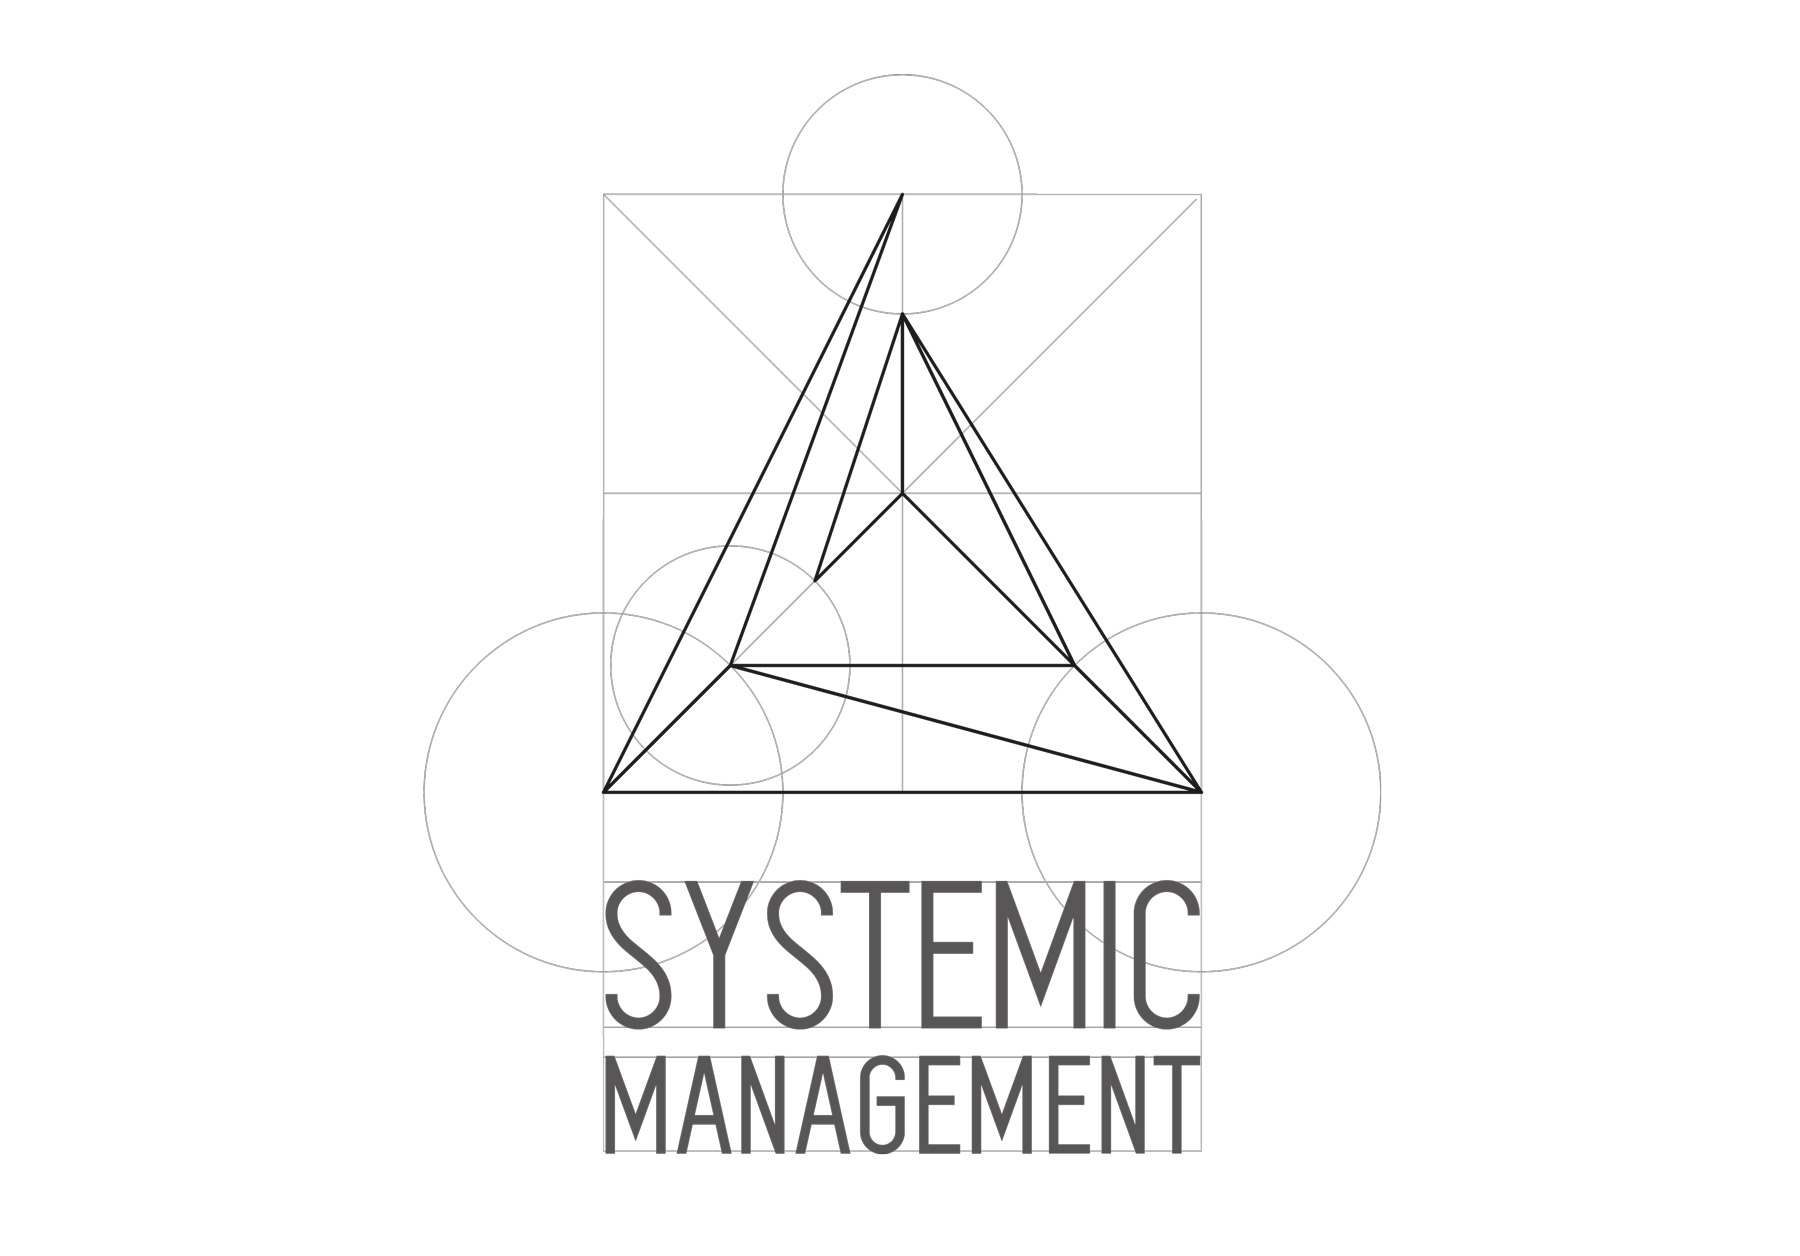 Systemic Management © 2016 Joana Regojo (www.joanaregojo.com)